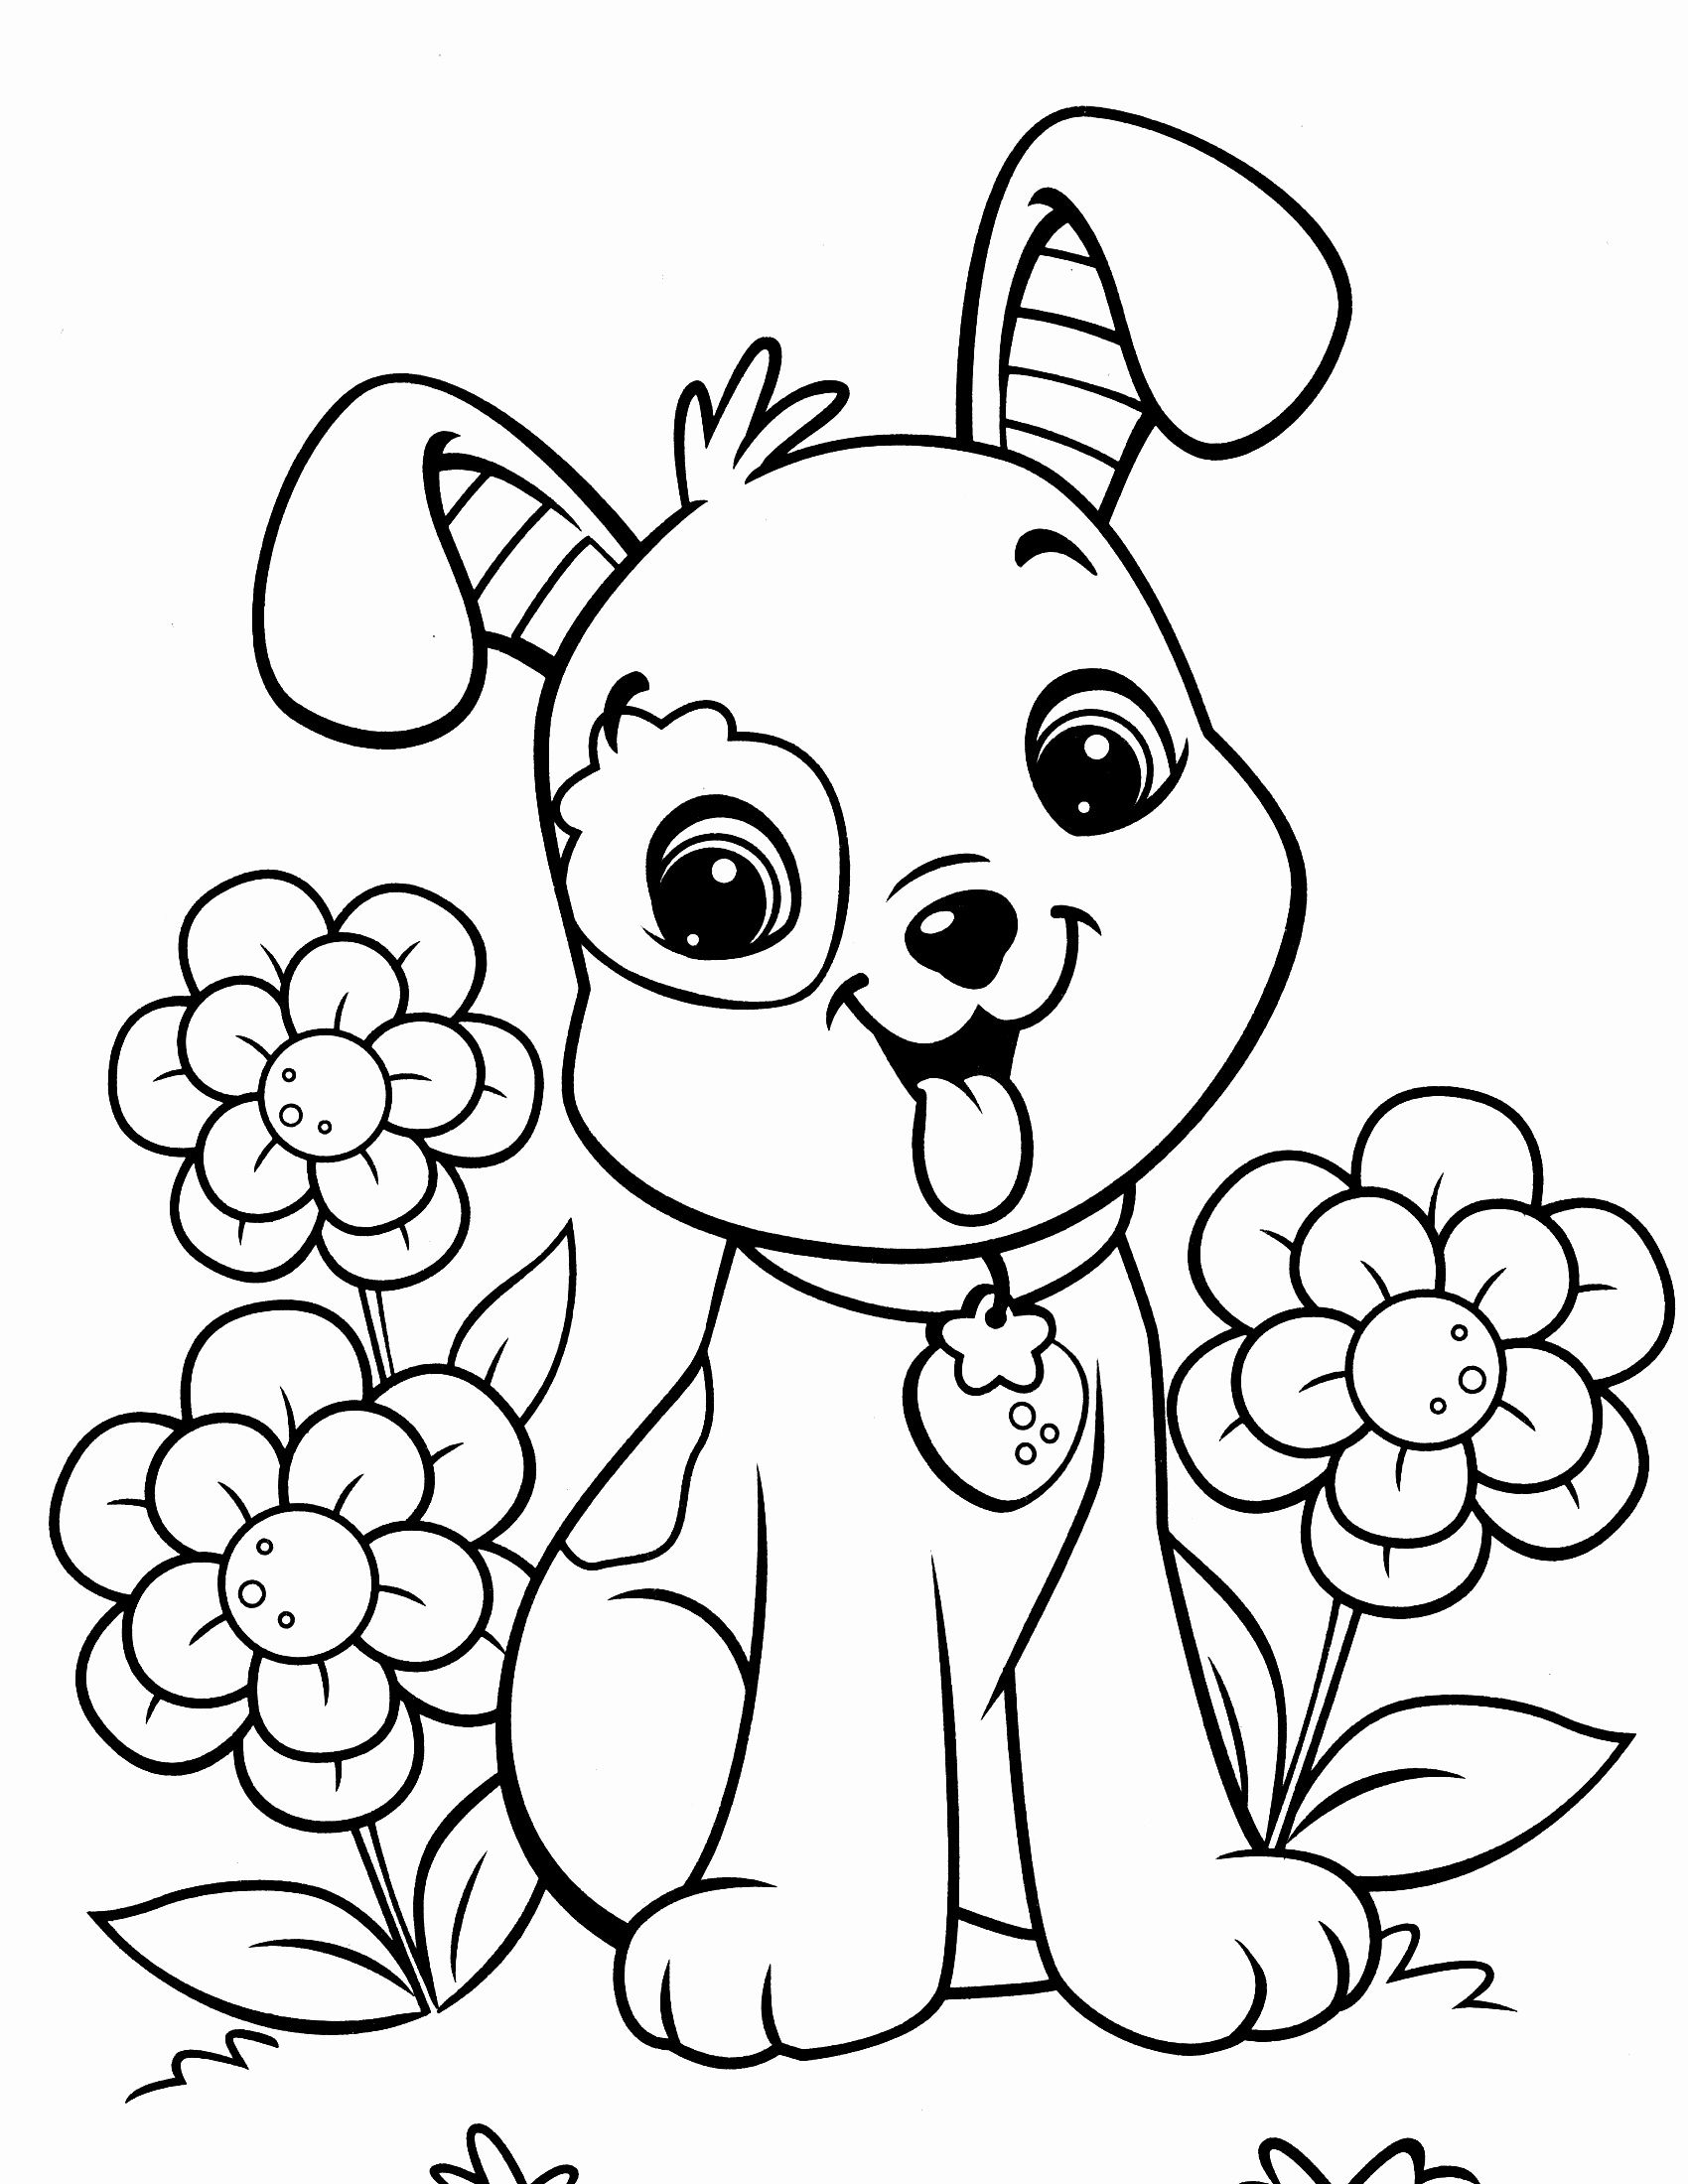 Puppy Free Printable Coloring Pages For Kids